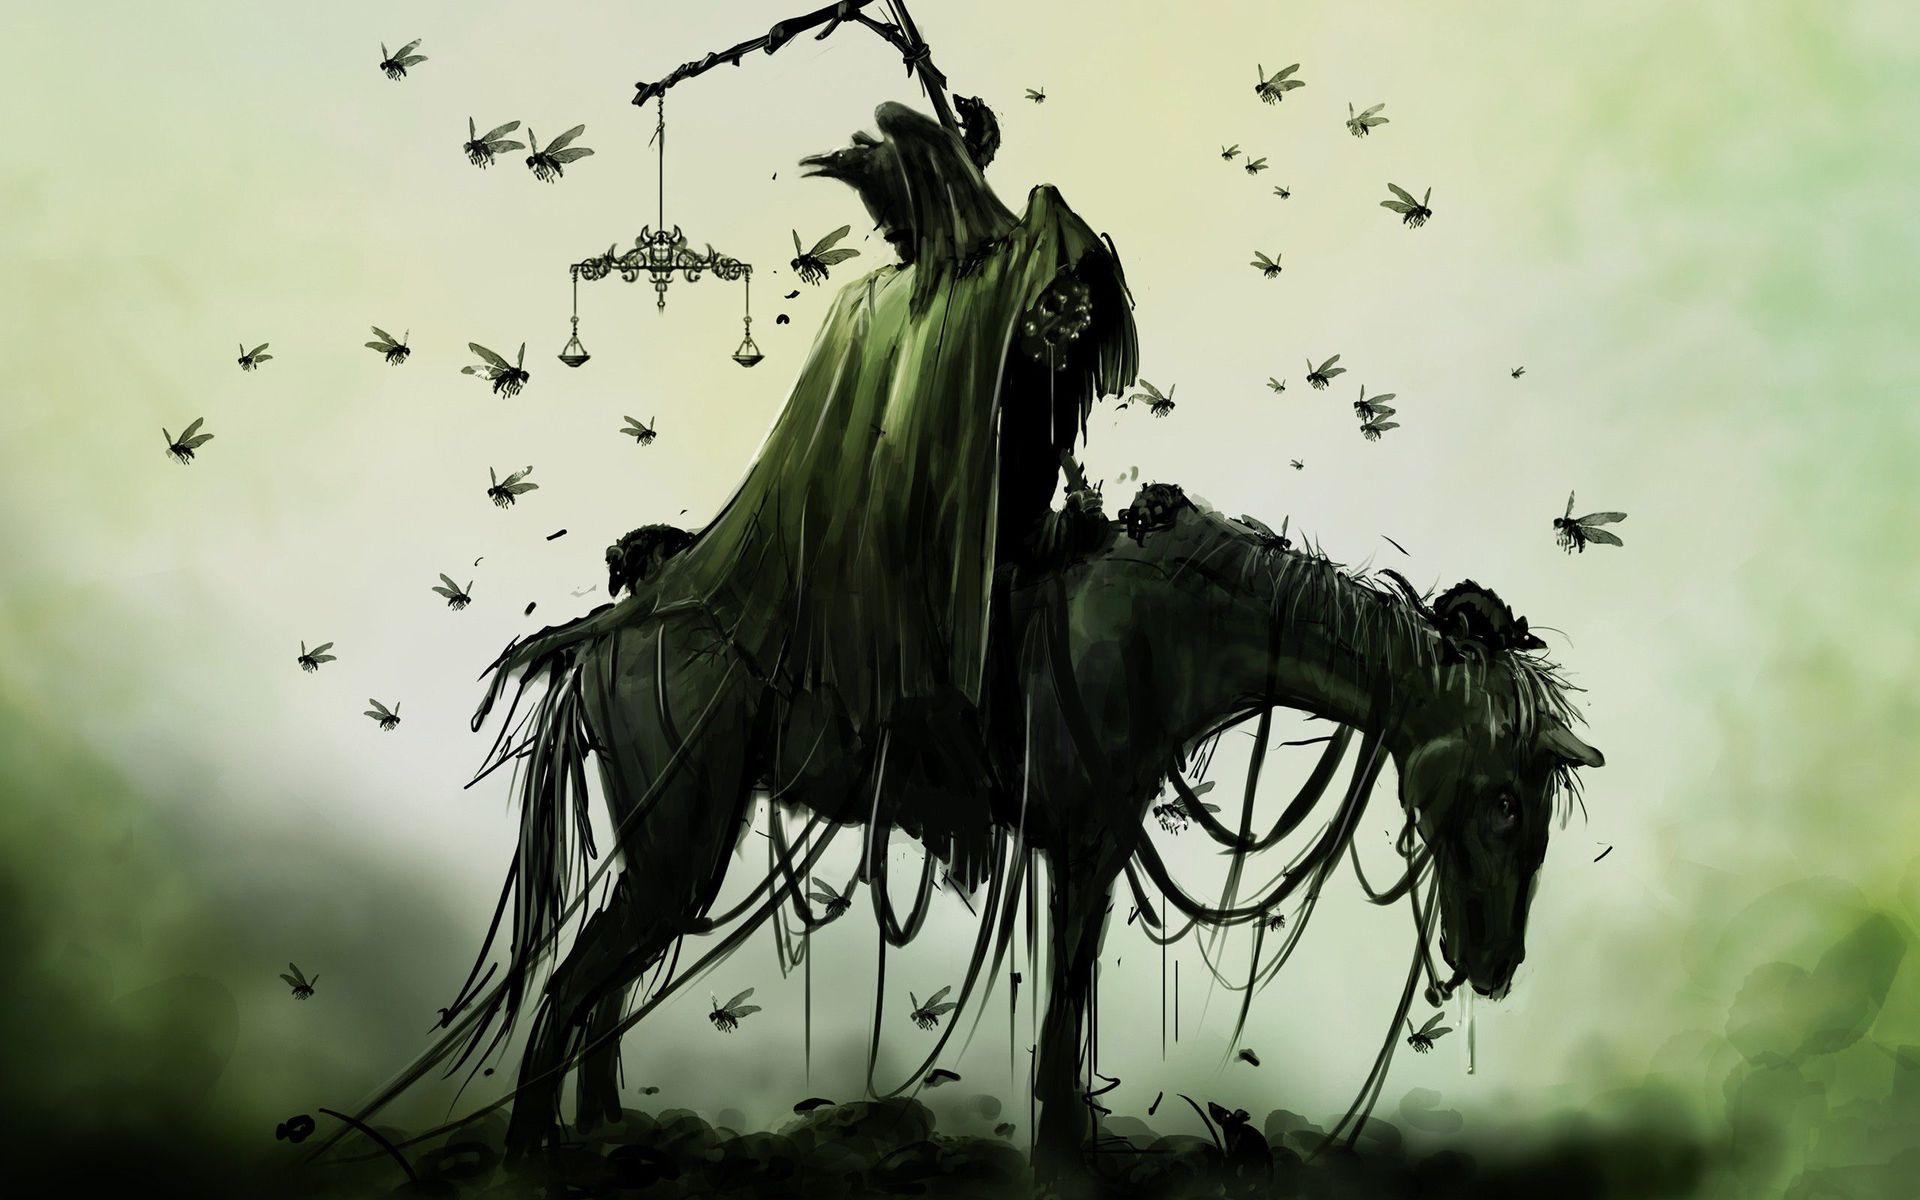 horseman of the apocalypse fantasy hd wallpaper 1920x1200 1486jpg 1920x1200